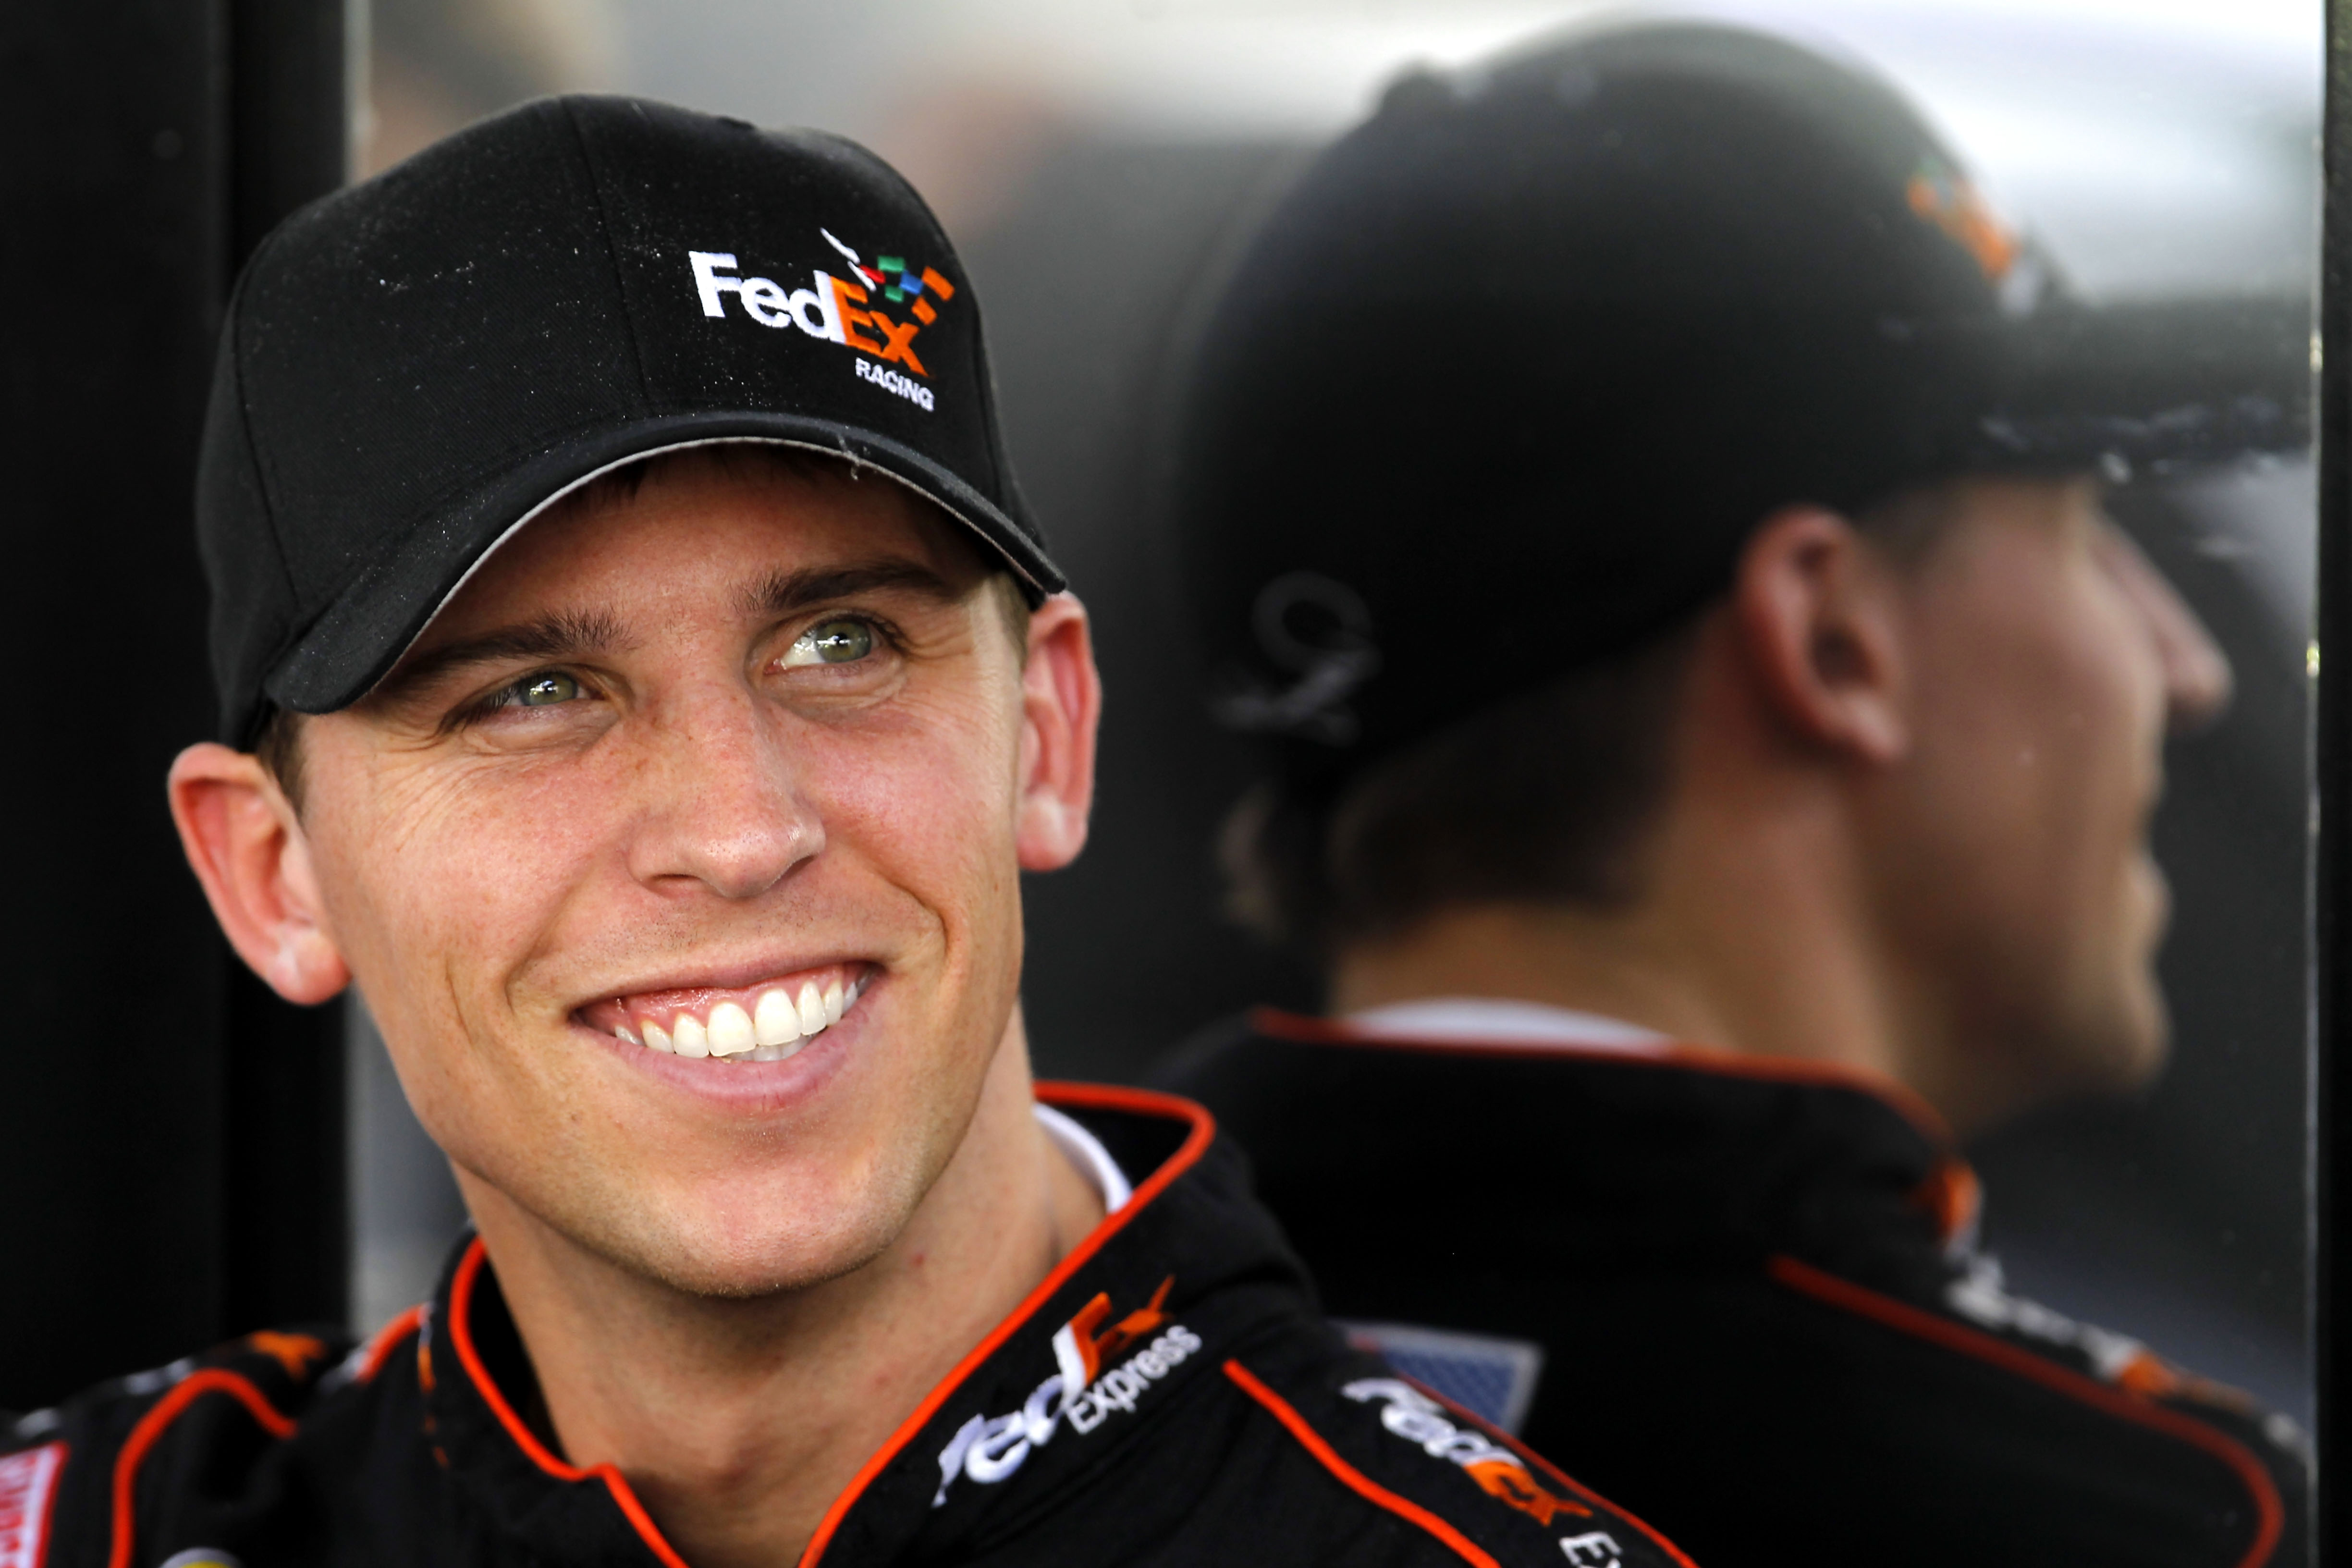 HOMESTEAD, FL - NOVEMBER 19:  Denny Hamlin, driver of the #11 FedEx Toyota, sits by his team hauler in the garage area during practice for the NASCAR Sprint Cup Series Ford 400 at Homestead-Miami Speedway on November 19, 2010 in Homestead, Florida.  (Phot